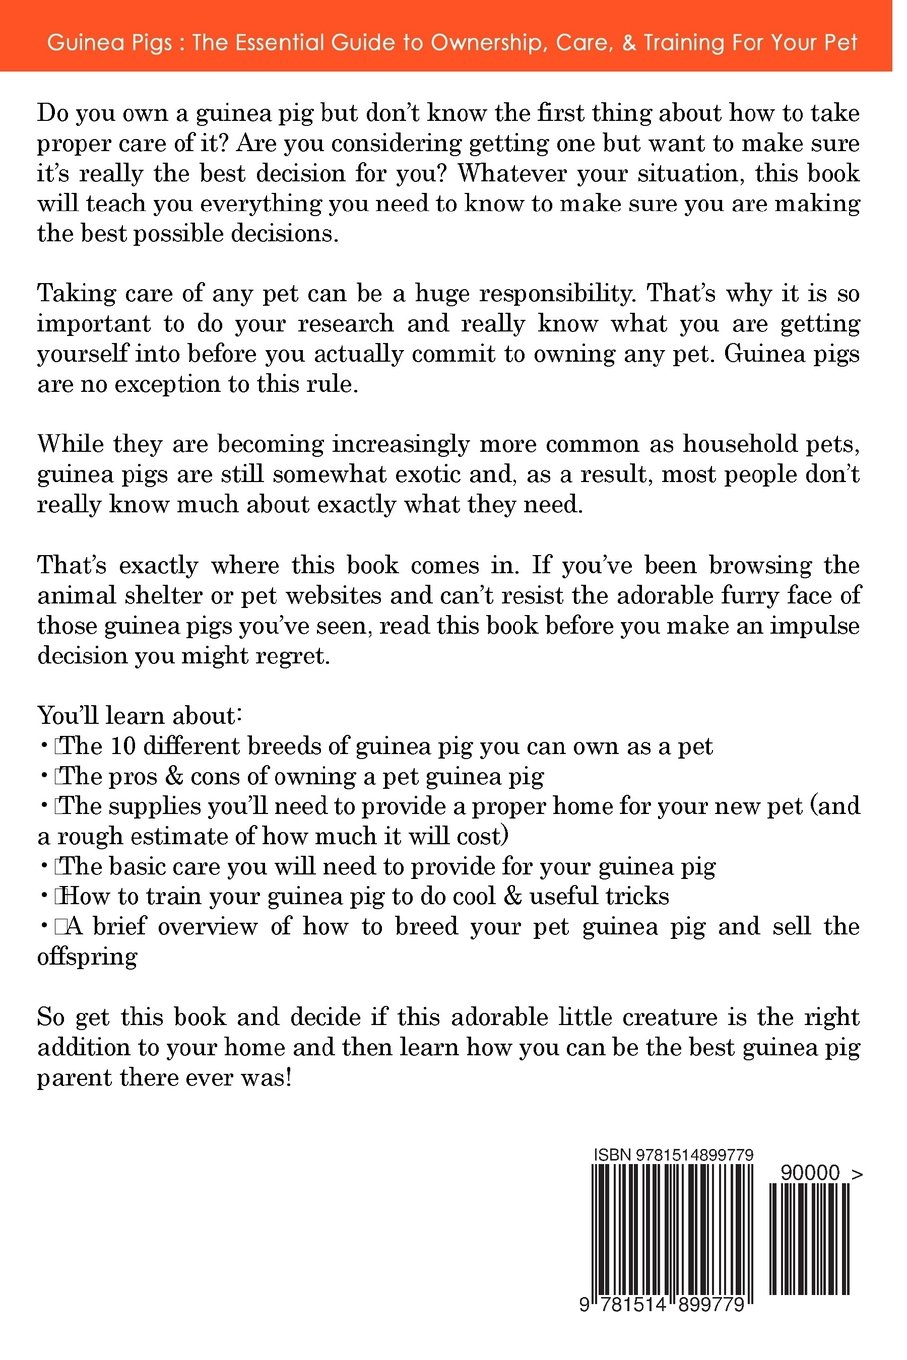 Guinea pigs the essential guide to ownership care training for guinea pigs the essential guide to ownership care training for your pet guinea pig care kate h pellham 9781514899779 amazon books solutioingenieria Image collections